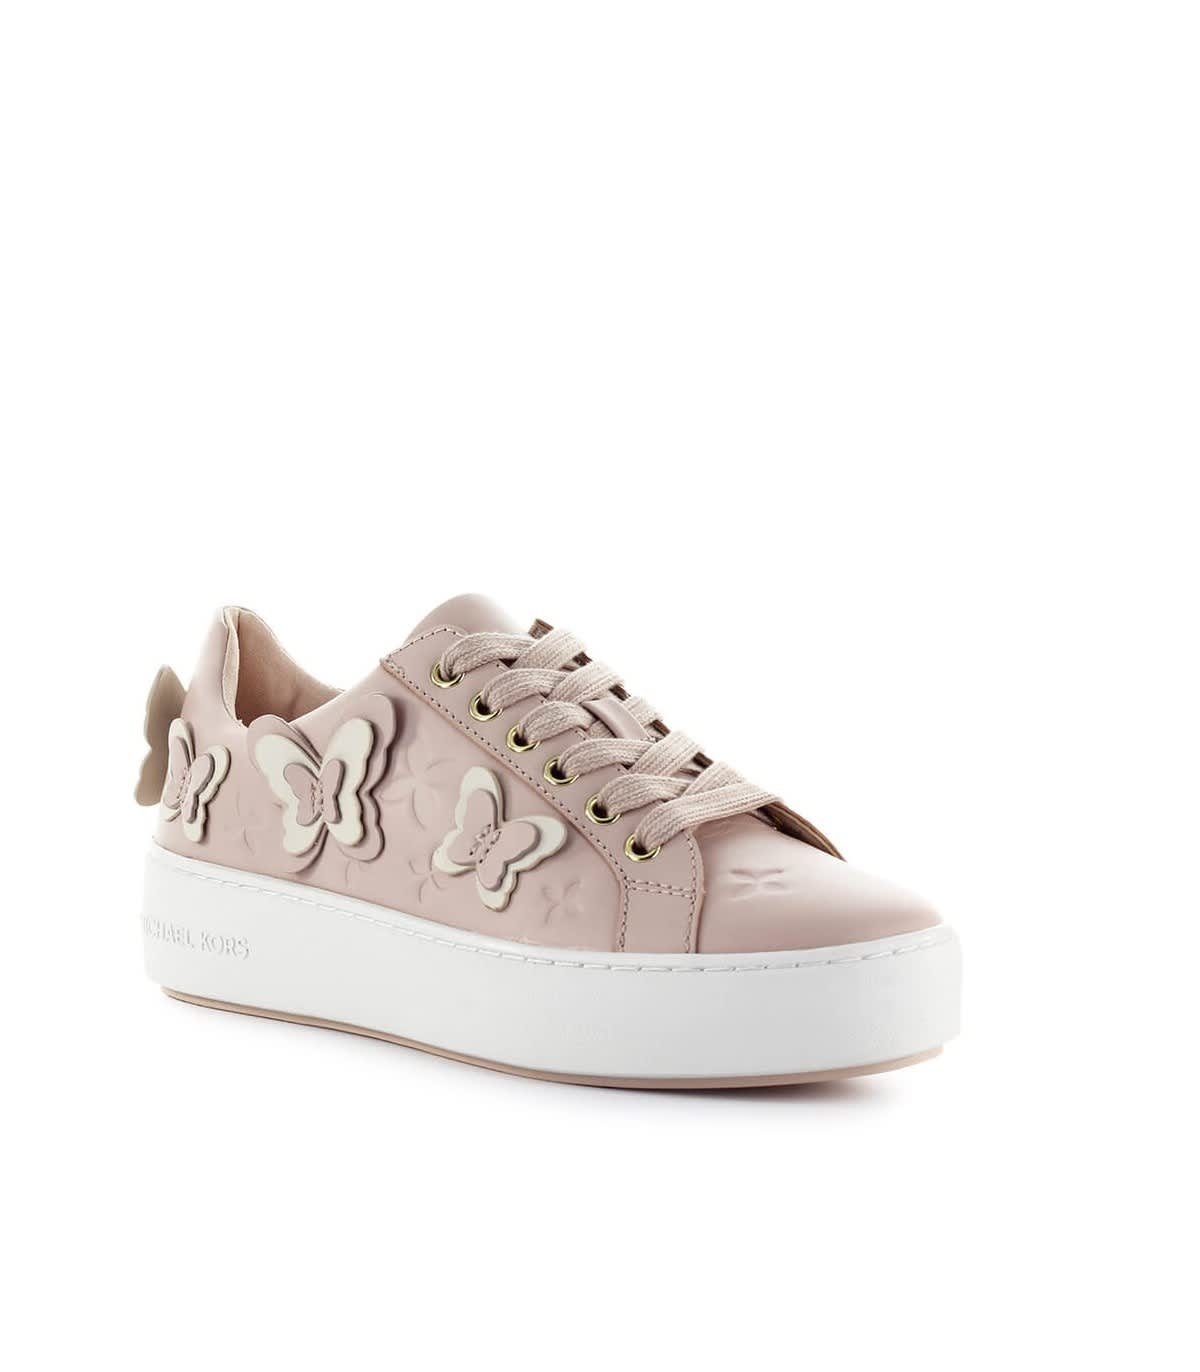 Details about Women's Shoes Sneakers MICHAEL KORS Felicity Lace Up Leather Soft Pink New